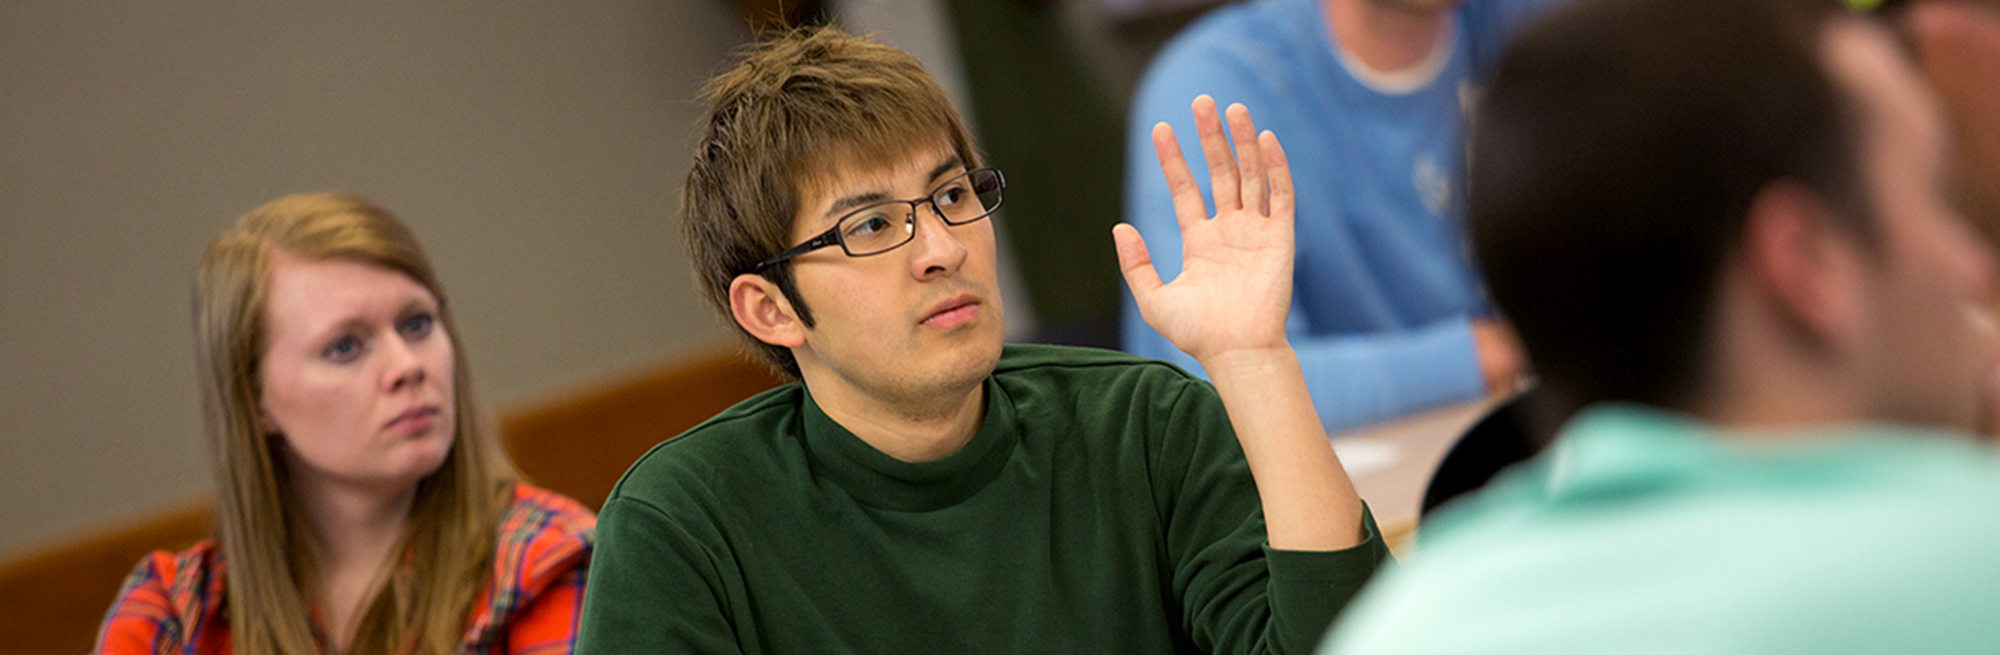 photo of a male student in class asking a question